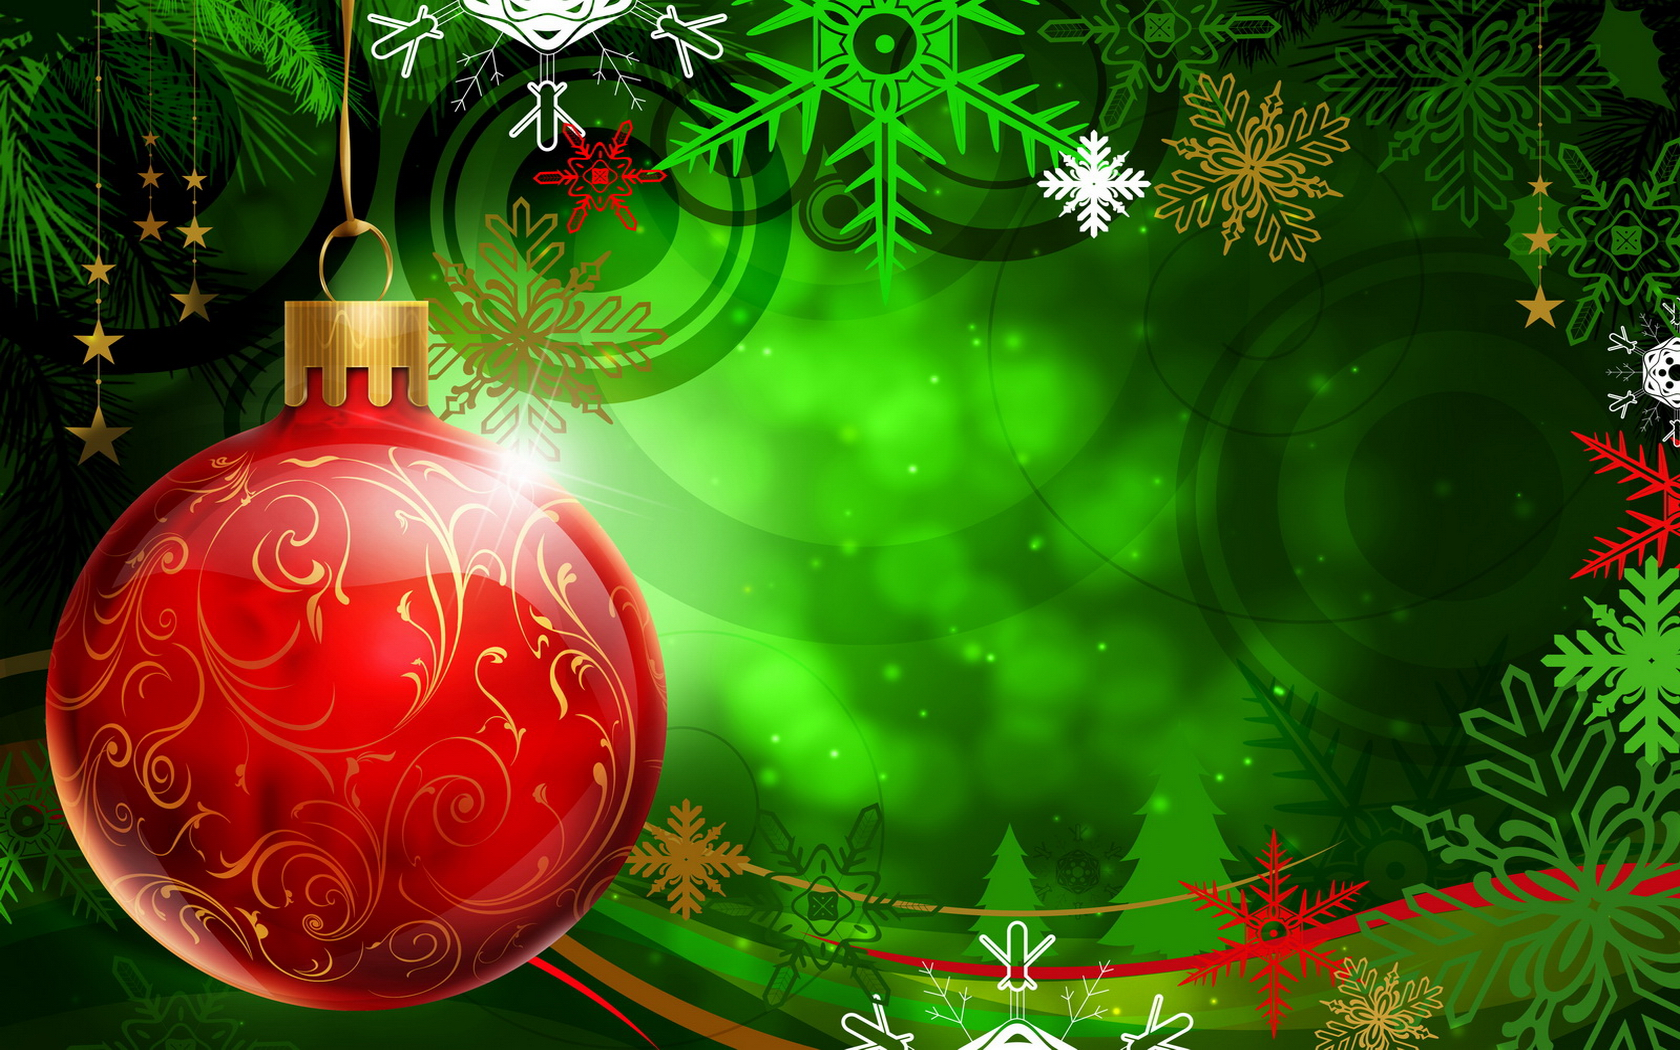 free-christian-christmas-for-laptop-computer-3d-Christmas-Pictures-and-HD-C-wallpaper-wpc5804984